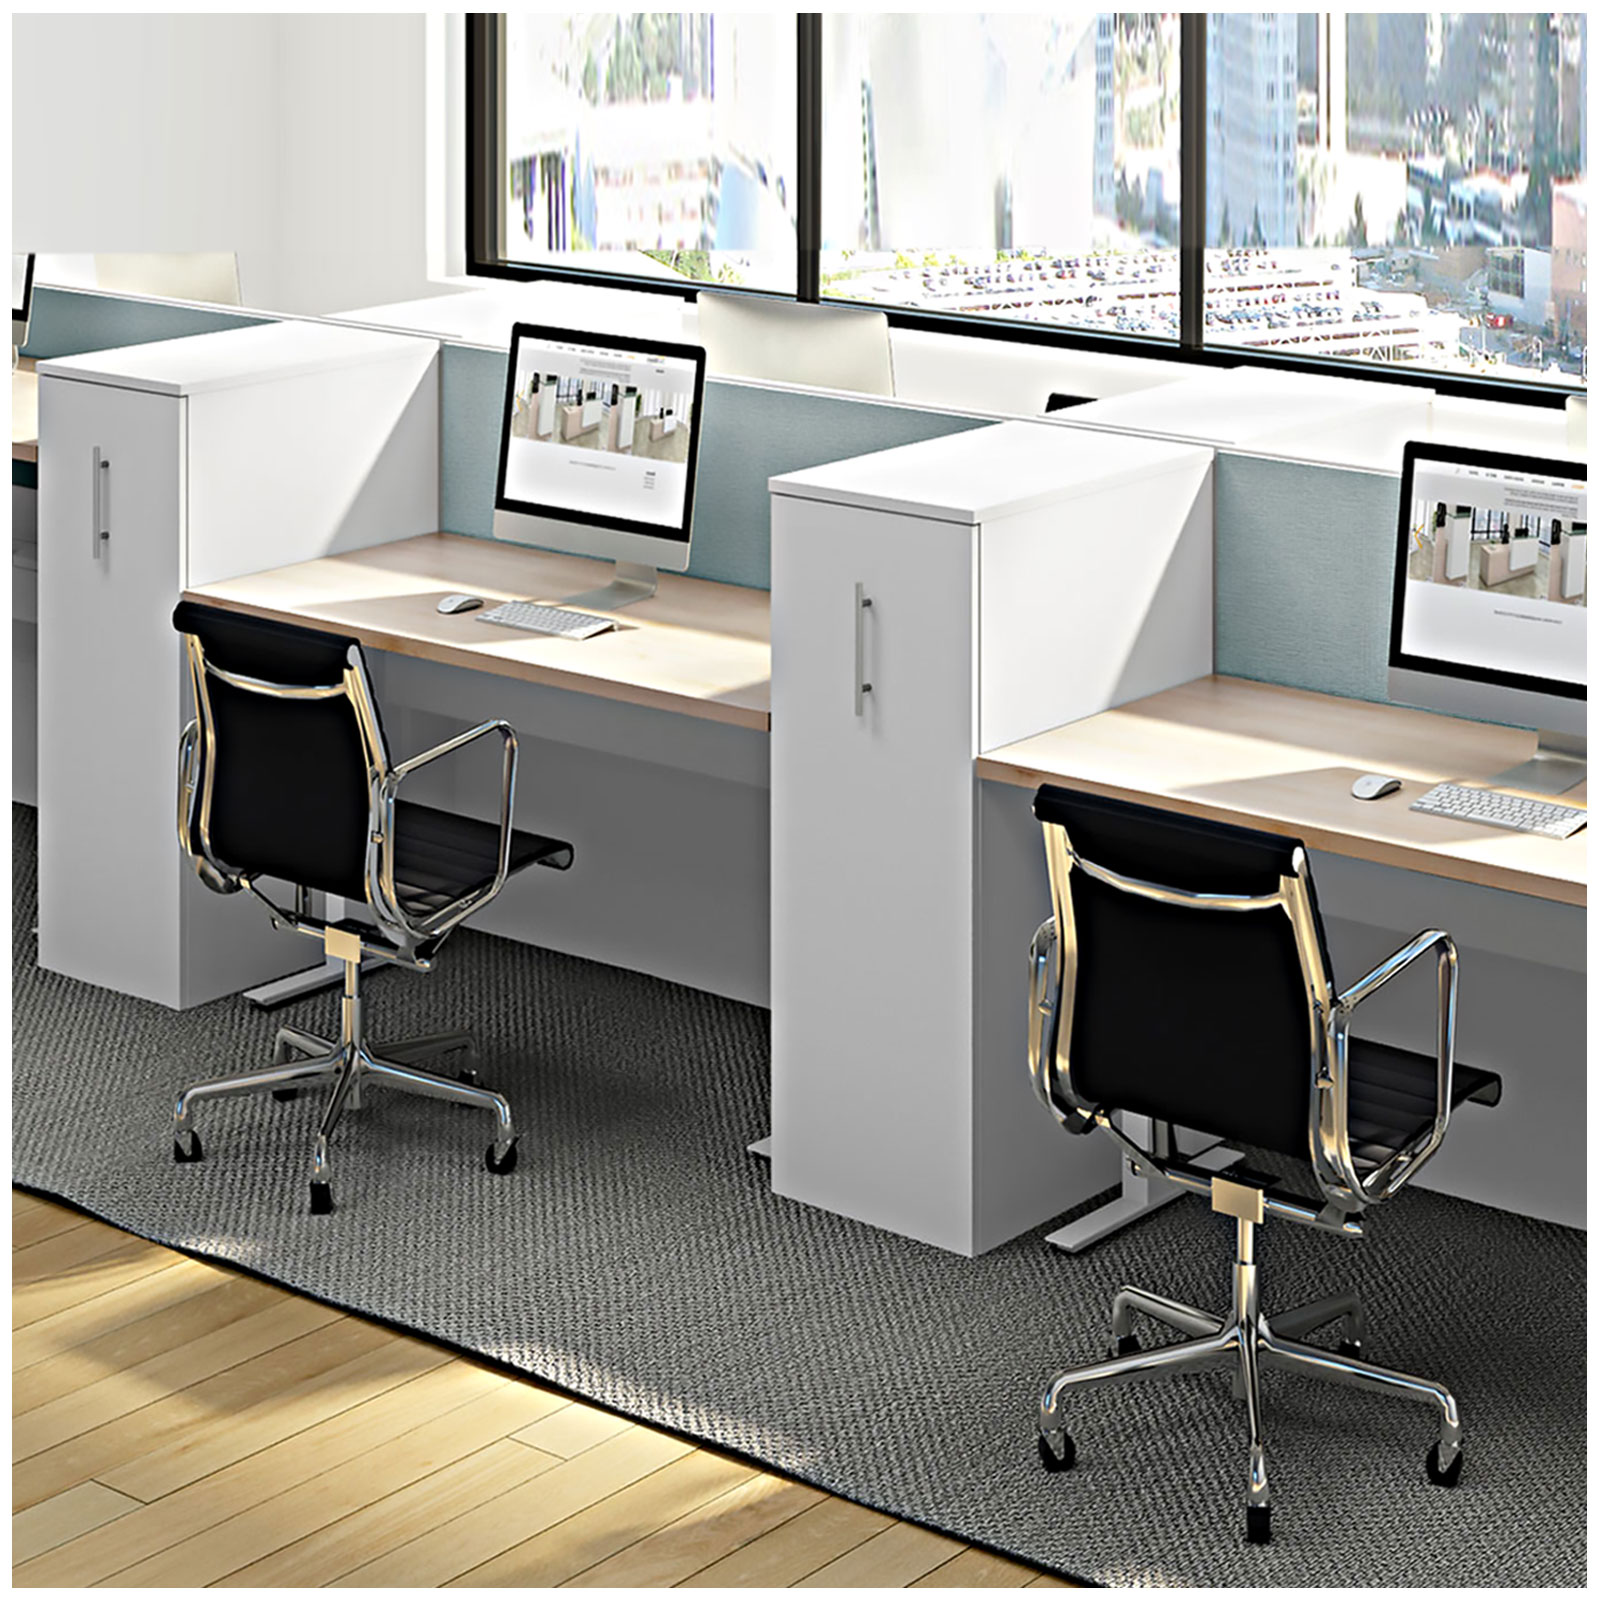 Fine Benching With Storage Towers Trader Boys Office Furniture Download Free Architecture Designs Scobabritishbridgeorg